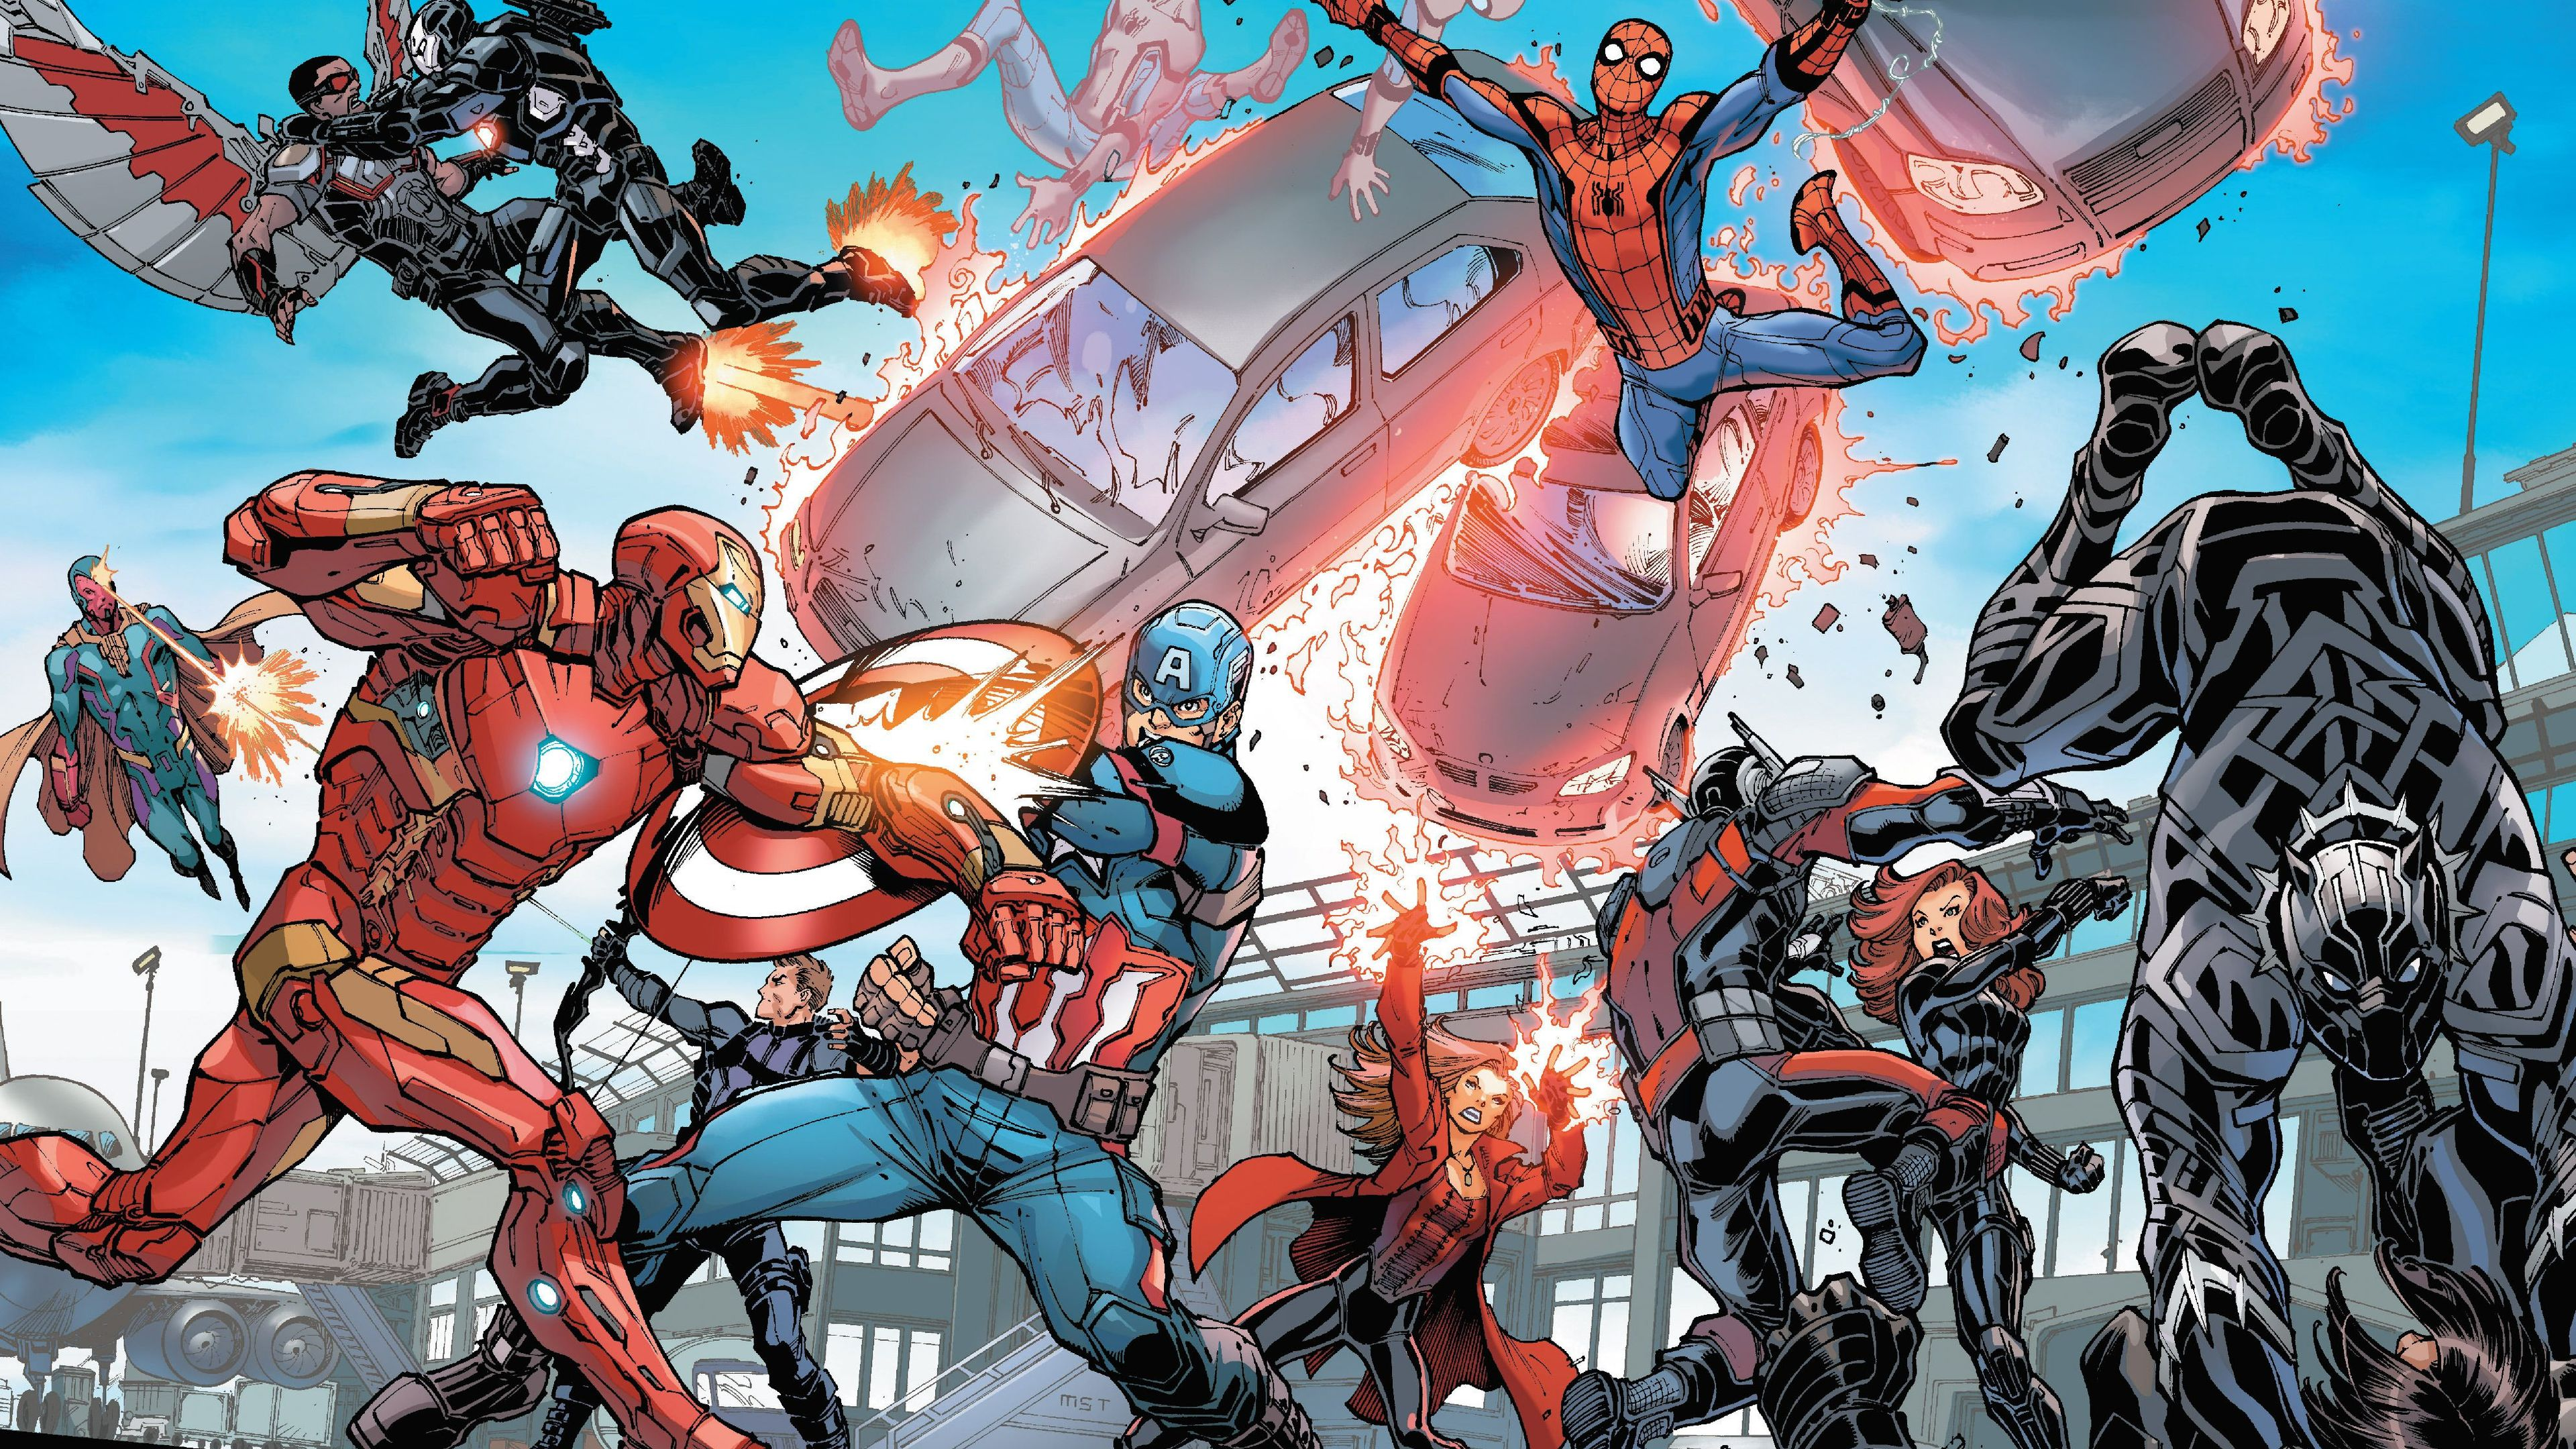 captain america civil war artwork 4k 1537645887 - Captain America Civil War Artwork 4k - war machine wallpapers, vision wallpapers, superheroes wallpapers, spiderman wallpapers, scarlet witch wallpapers, iron man wallpapers, hd-wallpapers, hawkeye wallpapers, falcon wallpapers, captain america wallpapers, black widow wallpapers, black panther wallpapers, artwork wallpapers, 4k-wallpapers